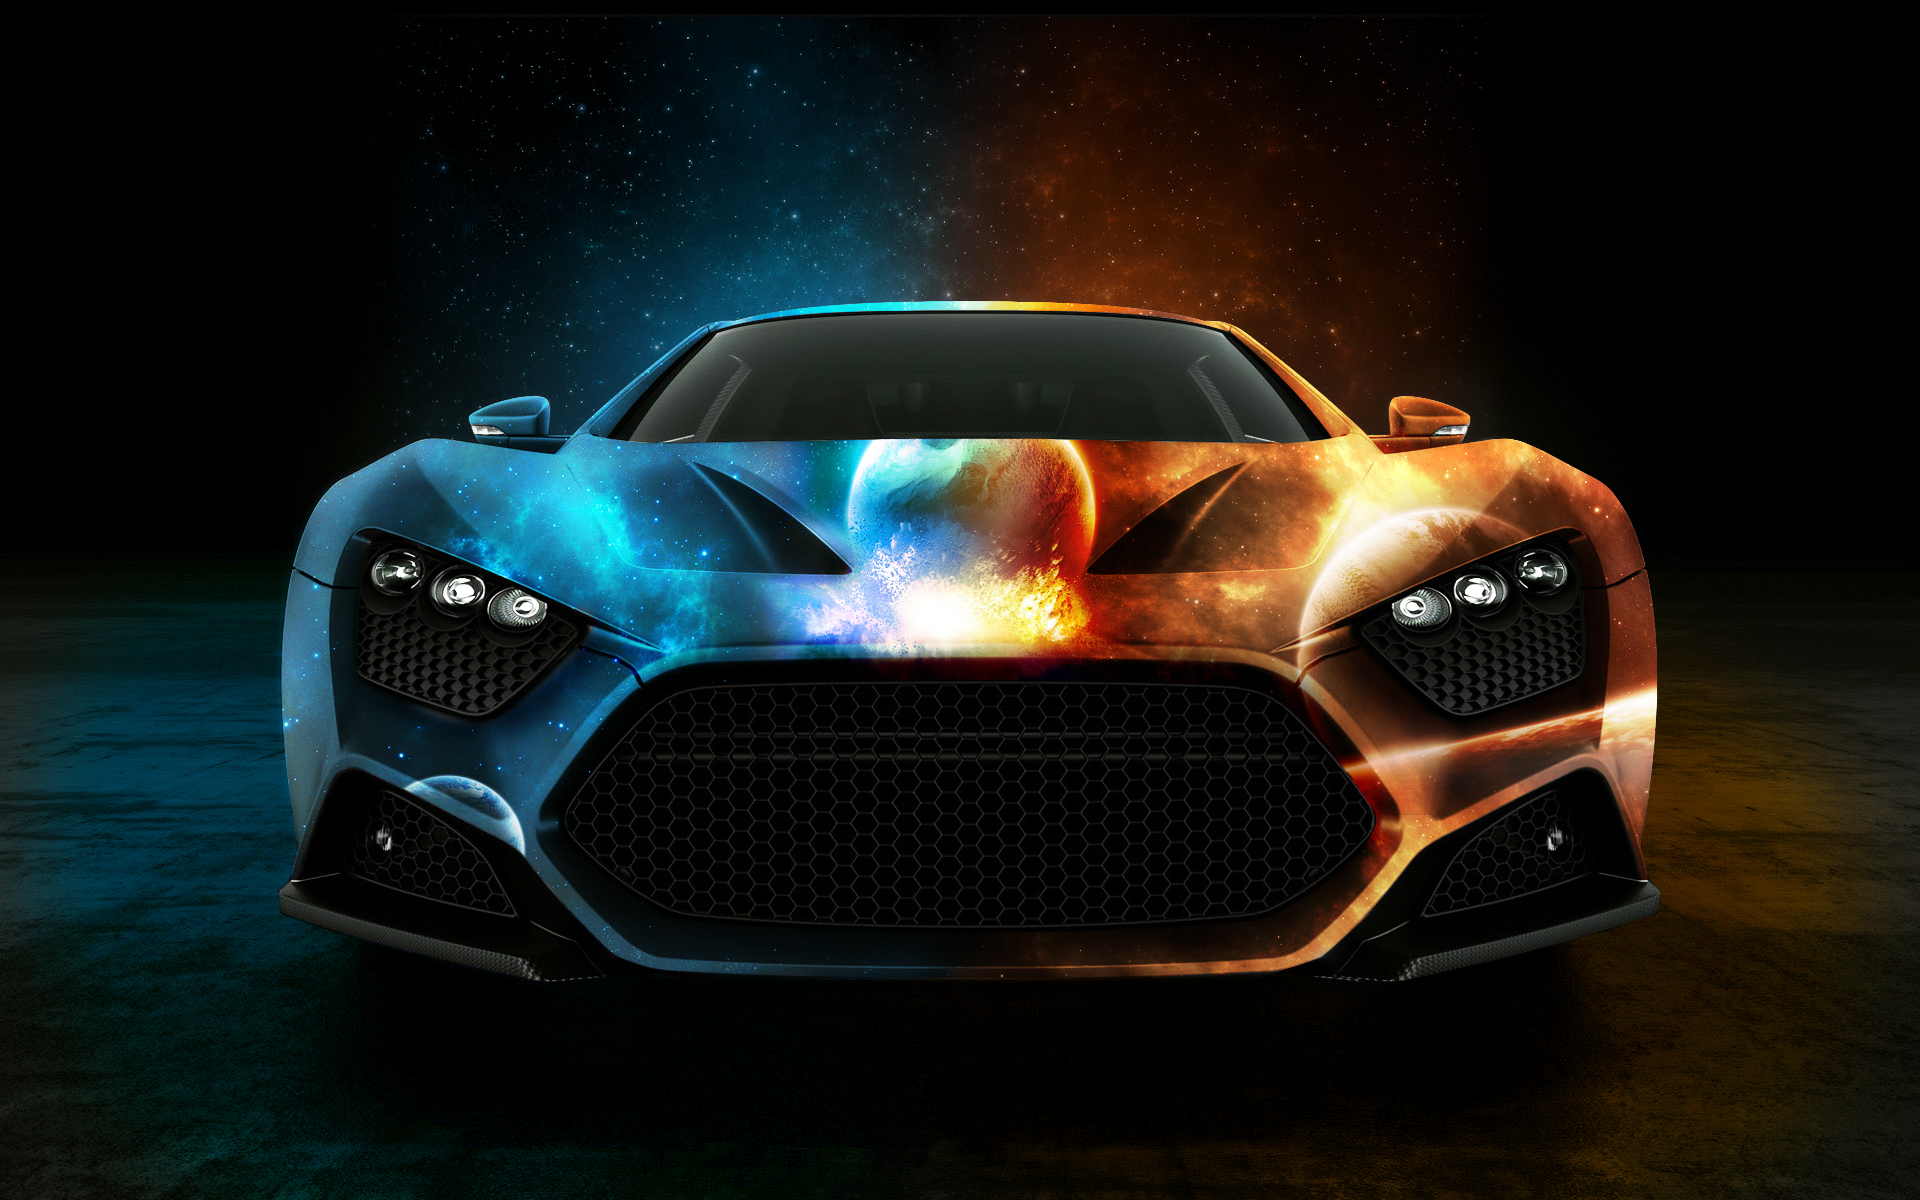 Sports car with a beautiful airbrush